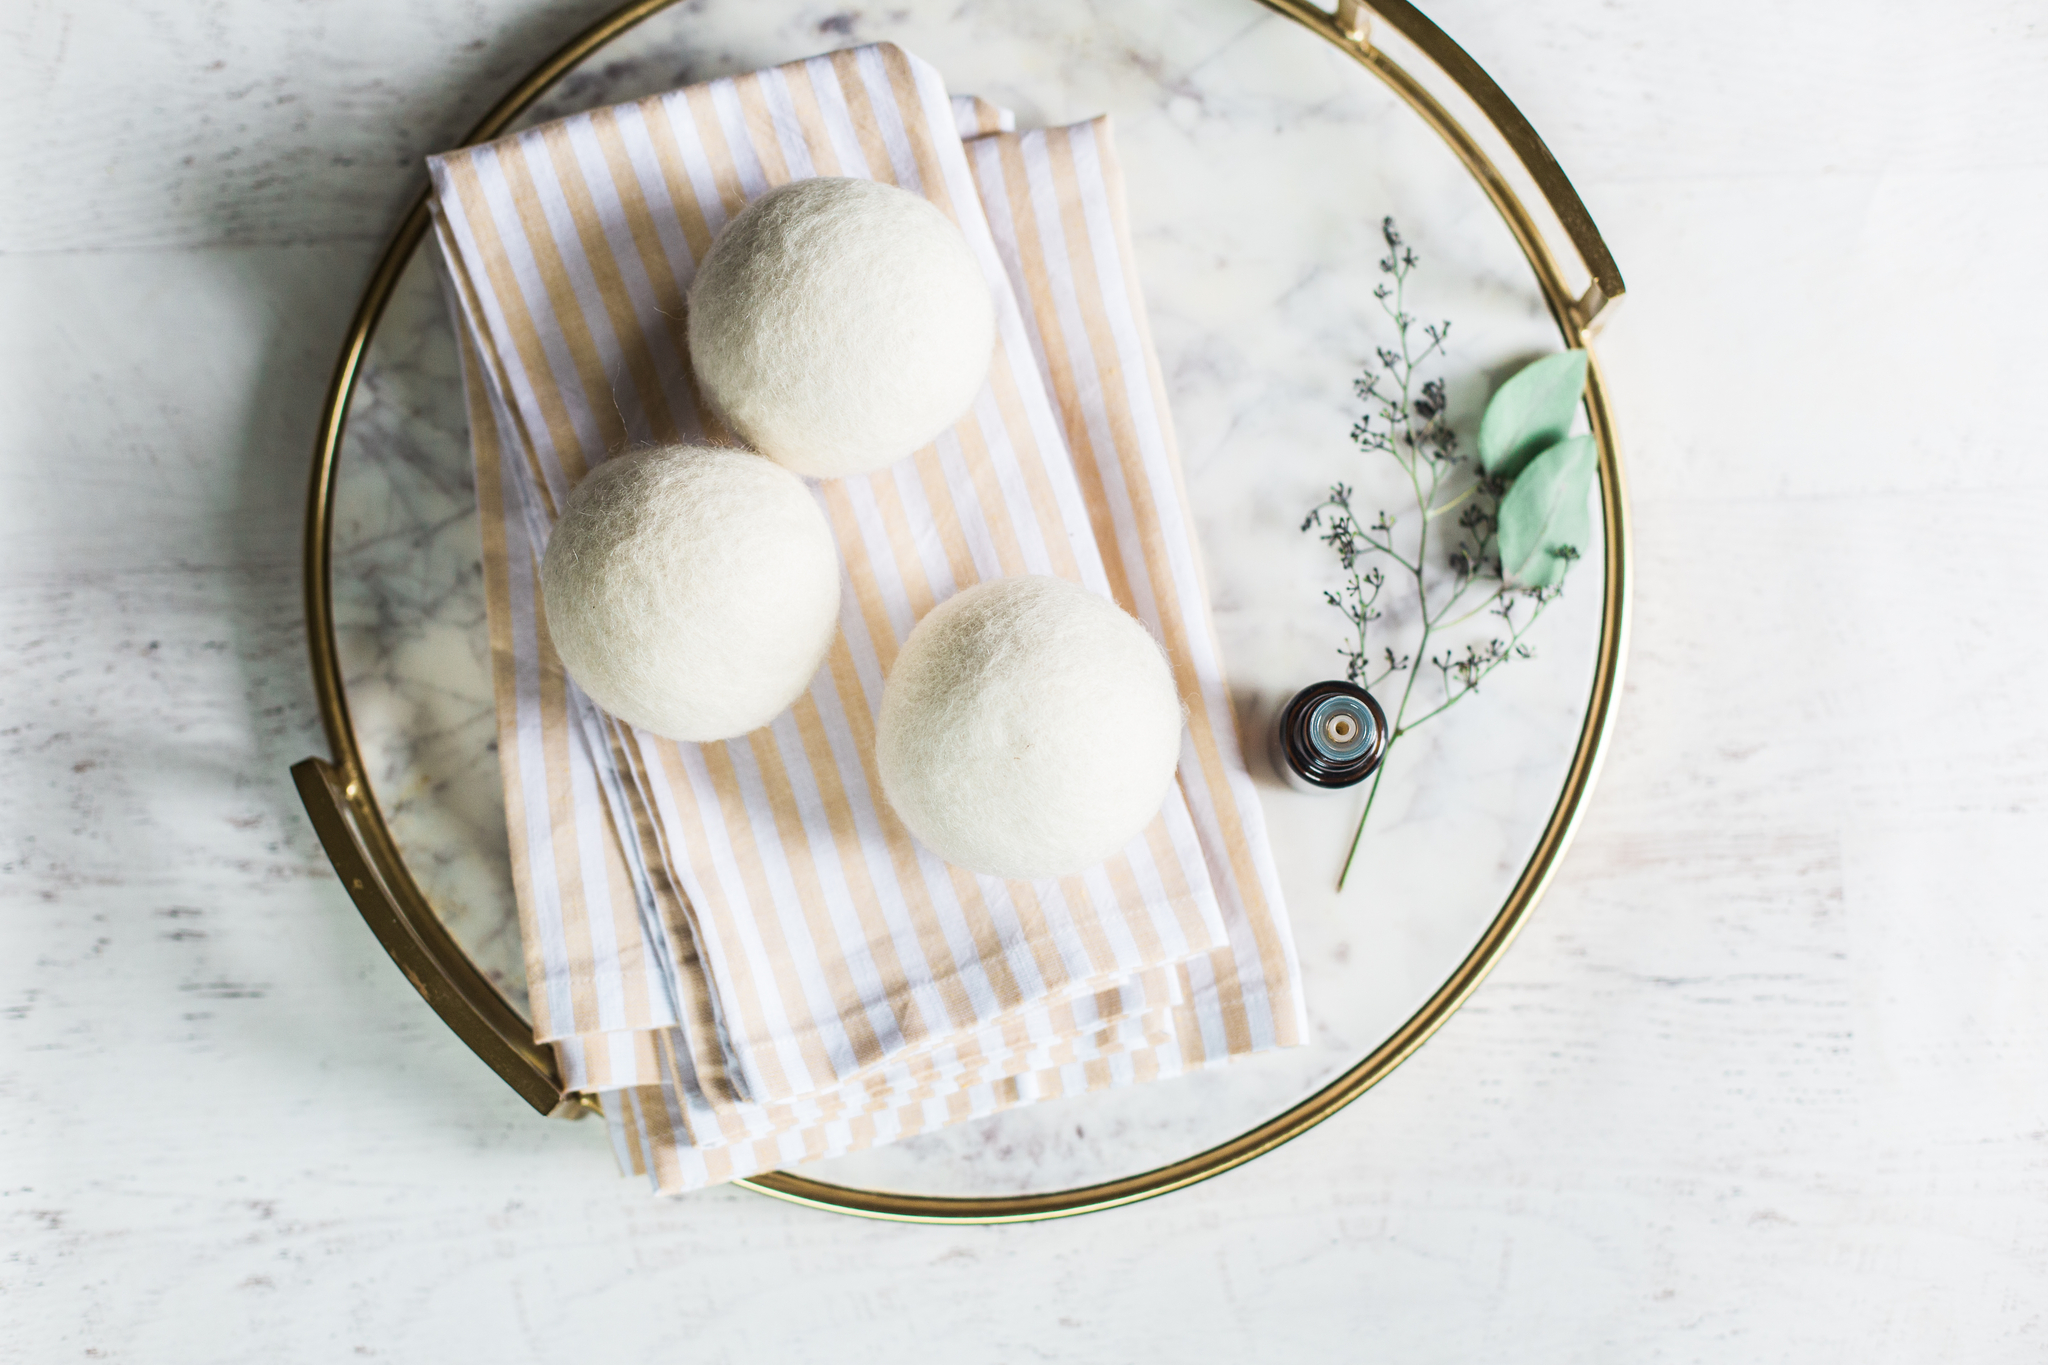 Dryer Balls and Essential Oils